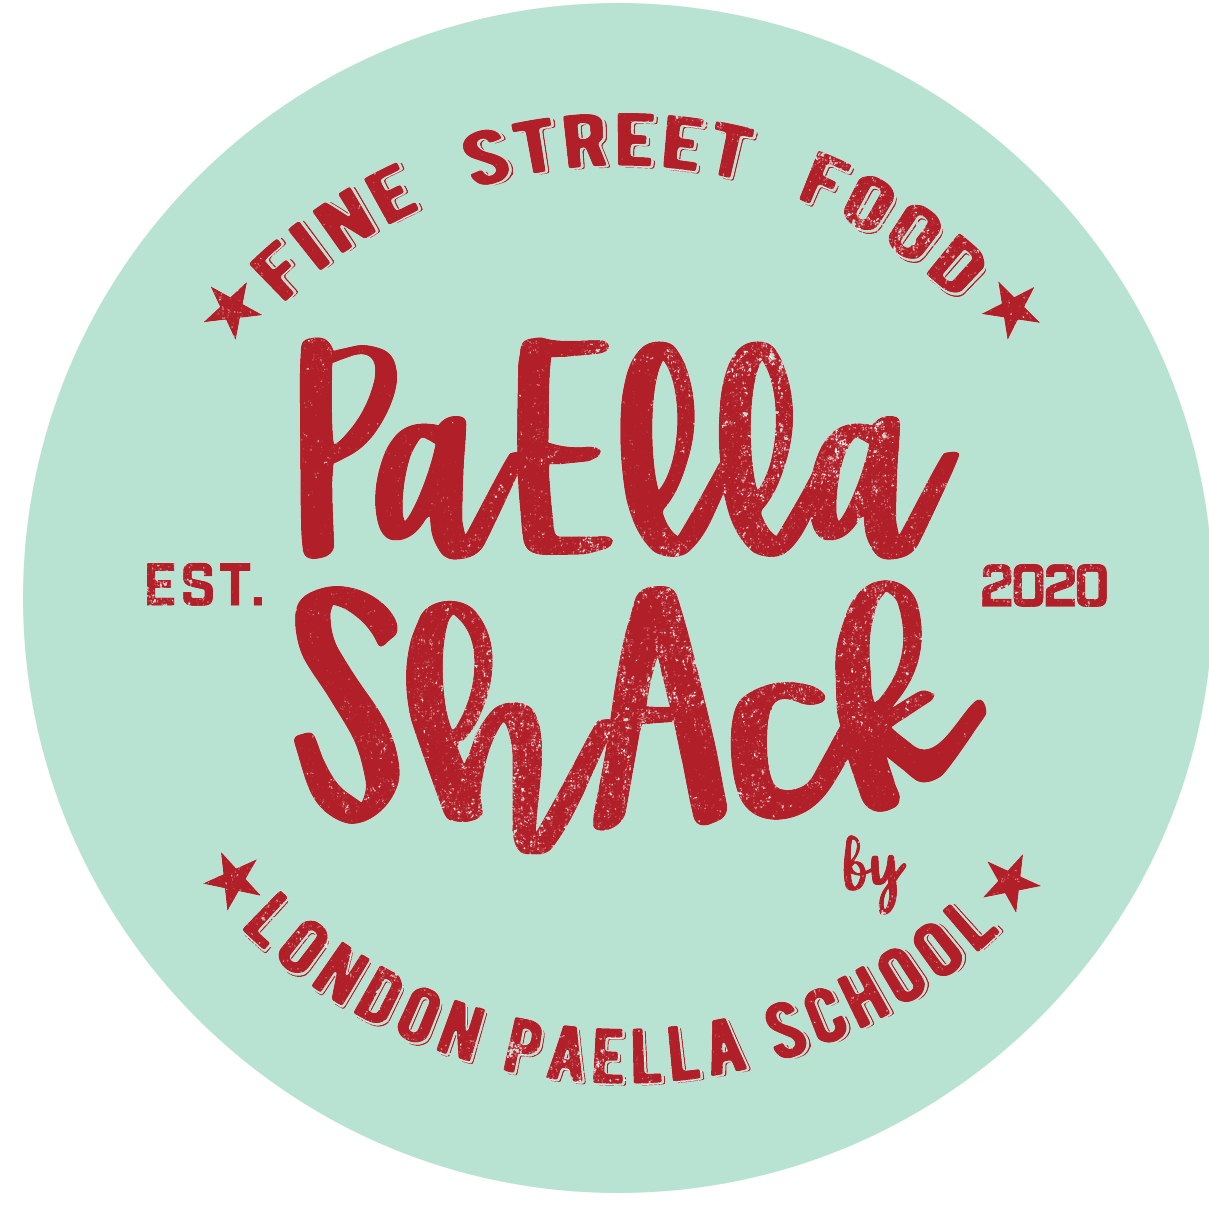 Paella Market Ltd internships in Greater London, London